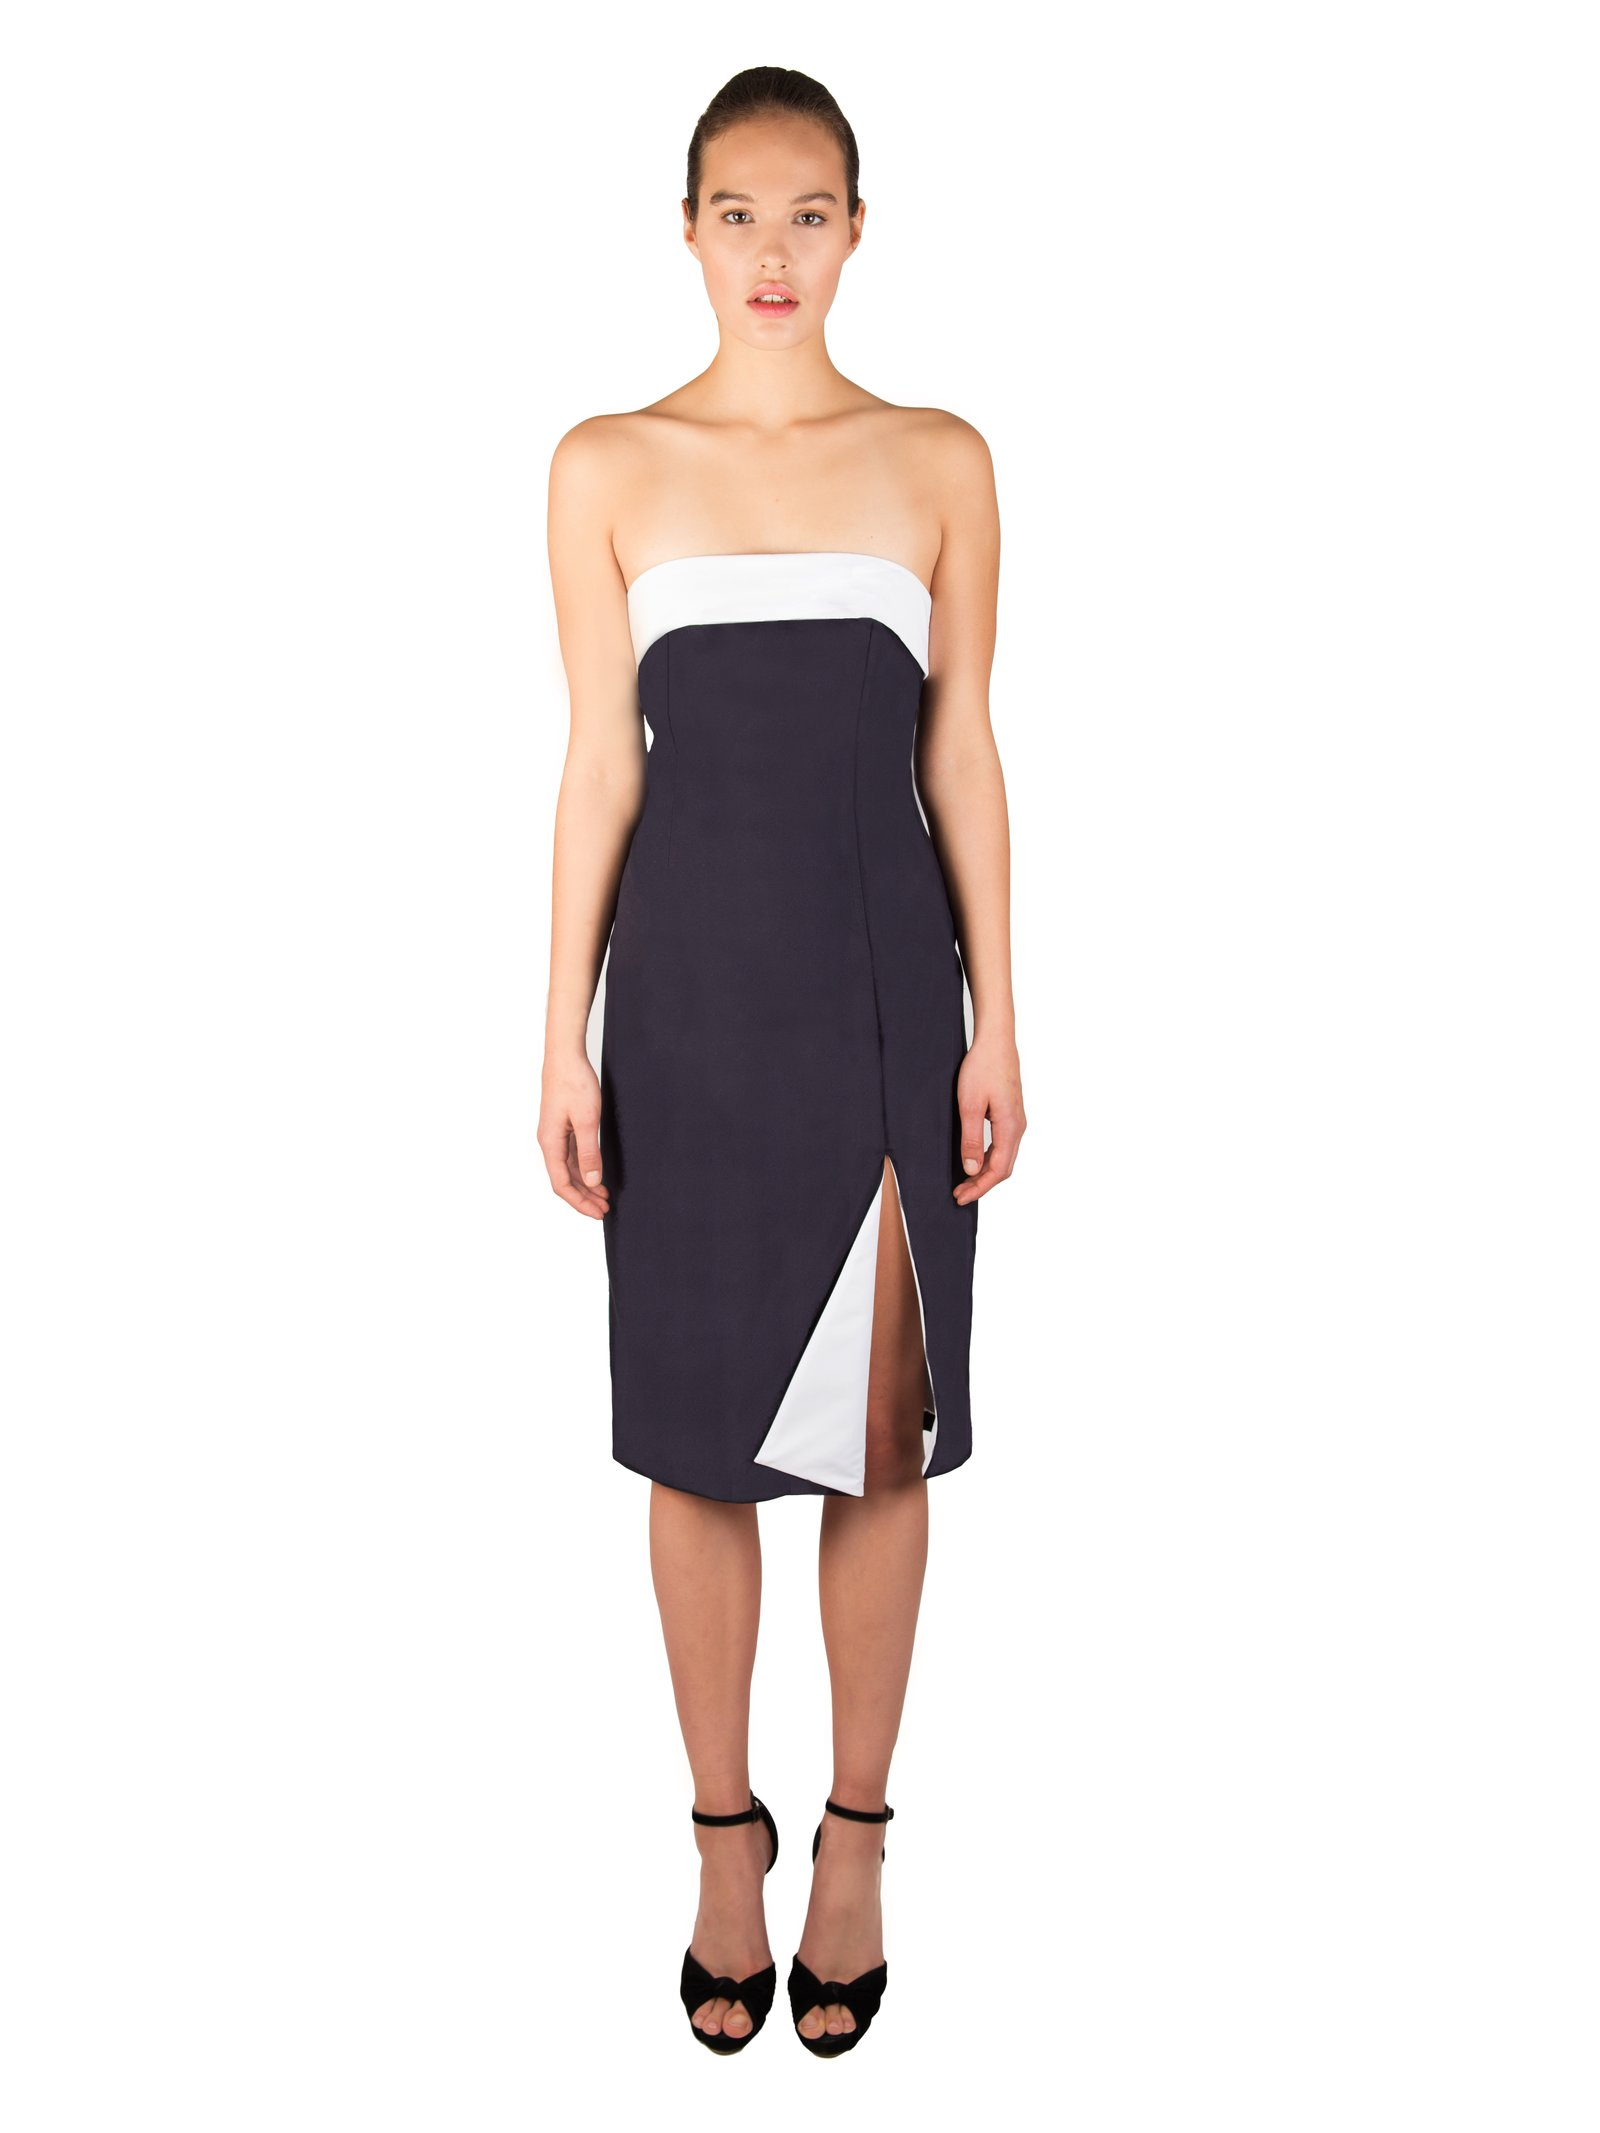 LIZA VETA Strapless Cotton Dress